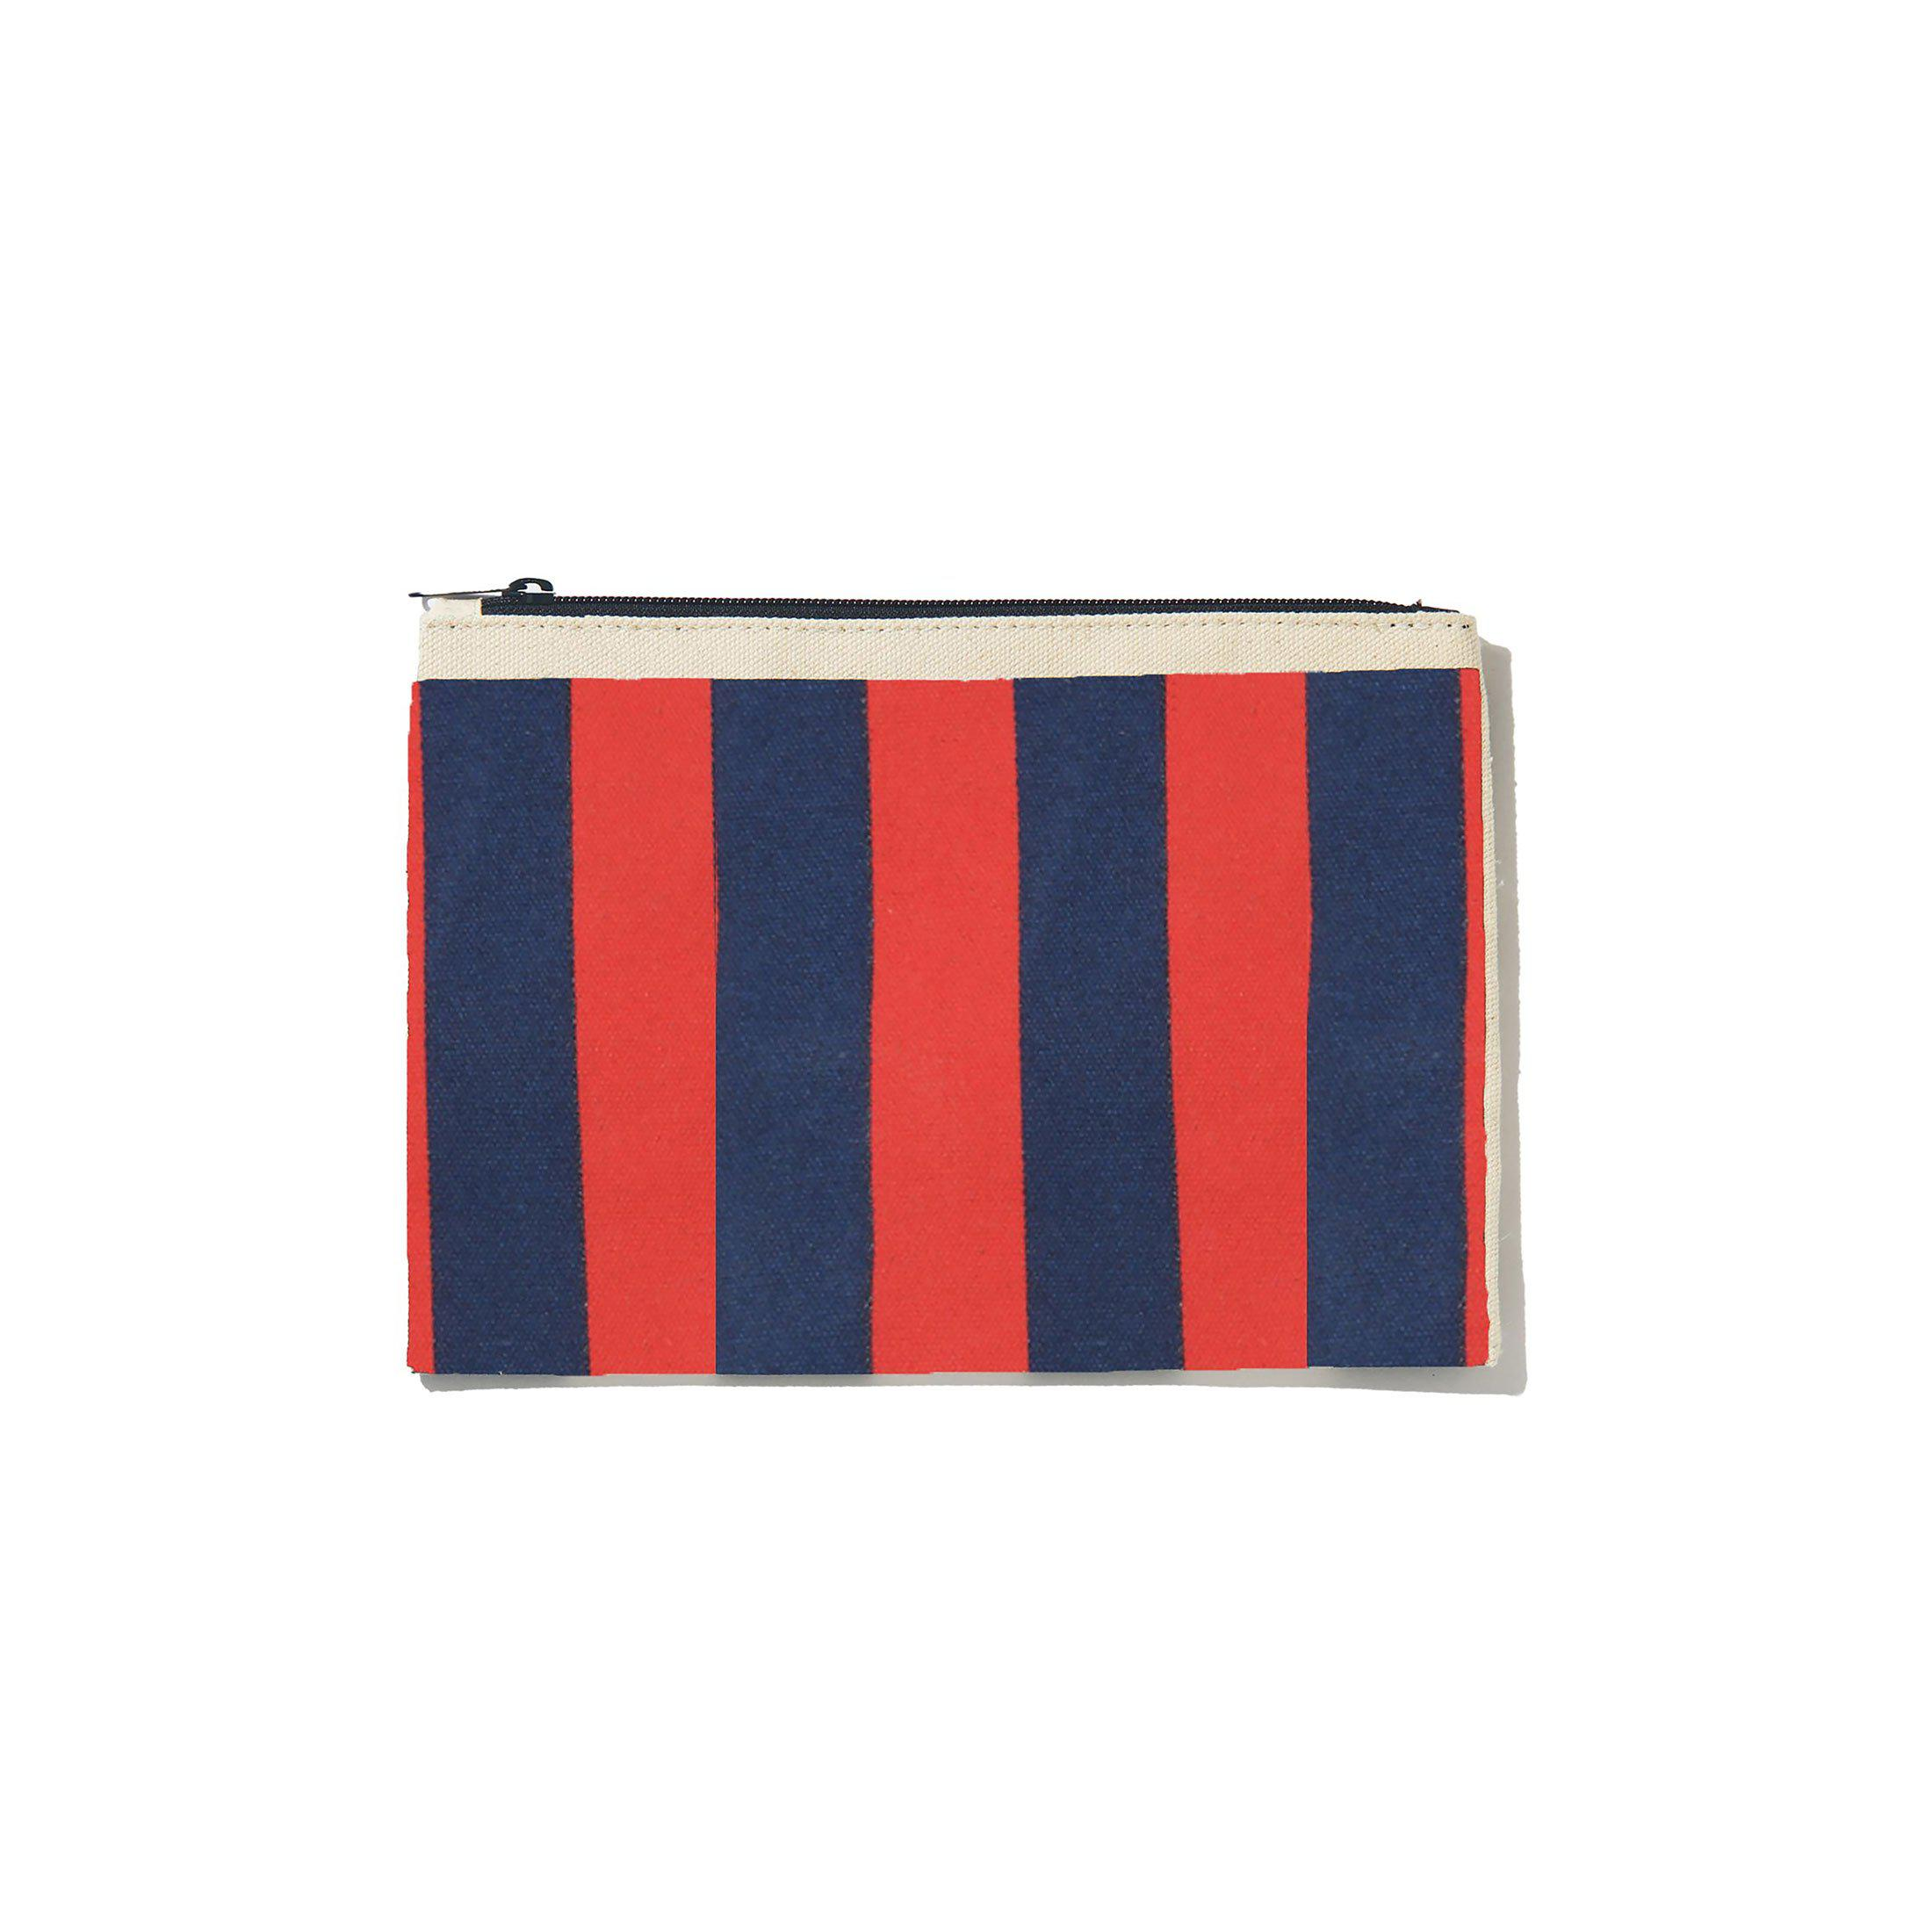 The All Over Striped Pouch - Navy/Poppy